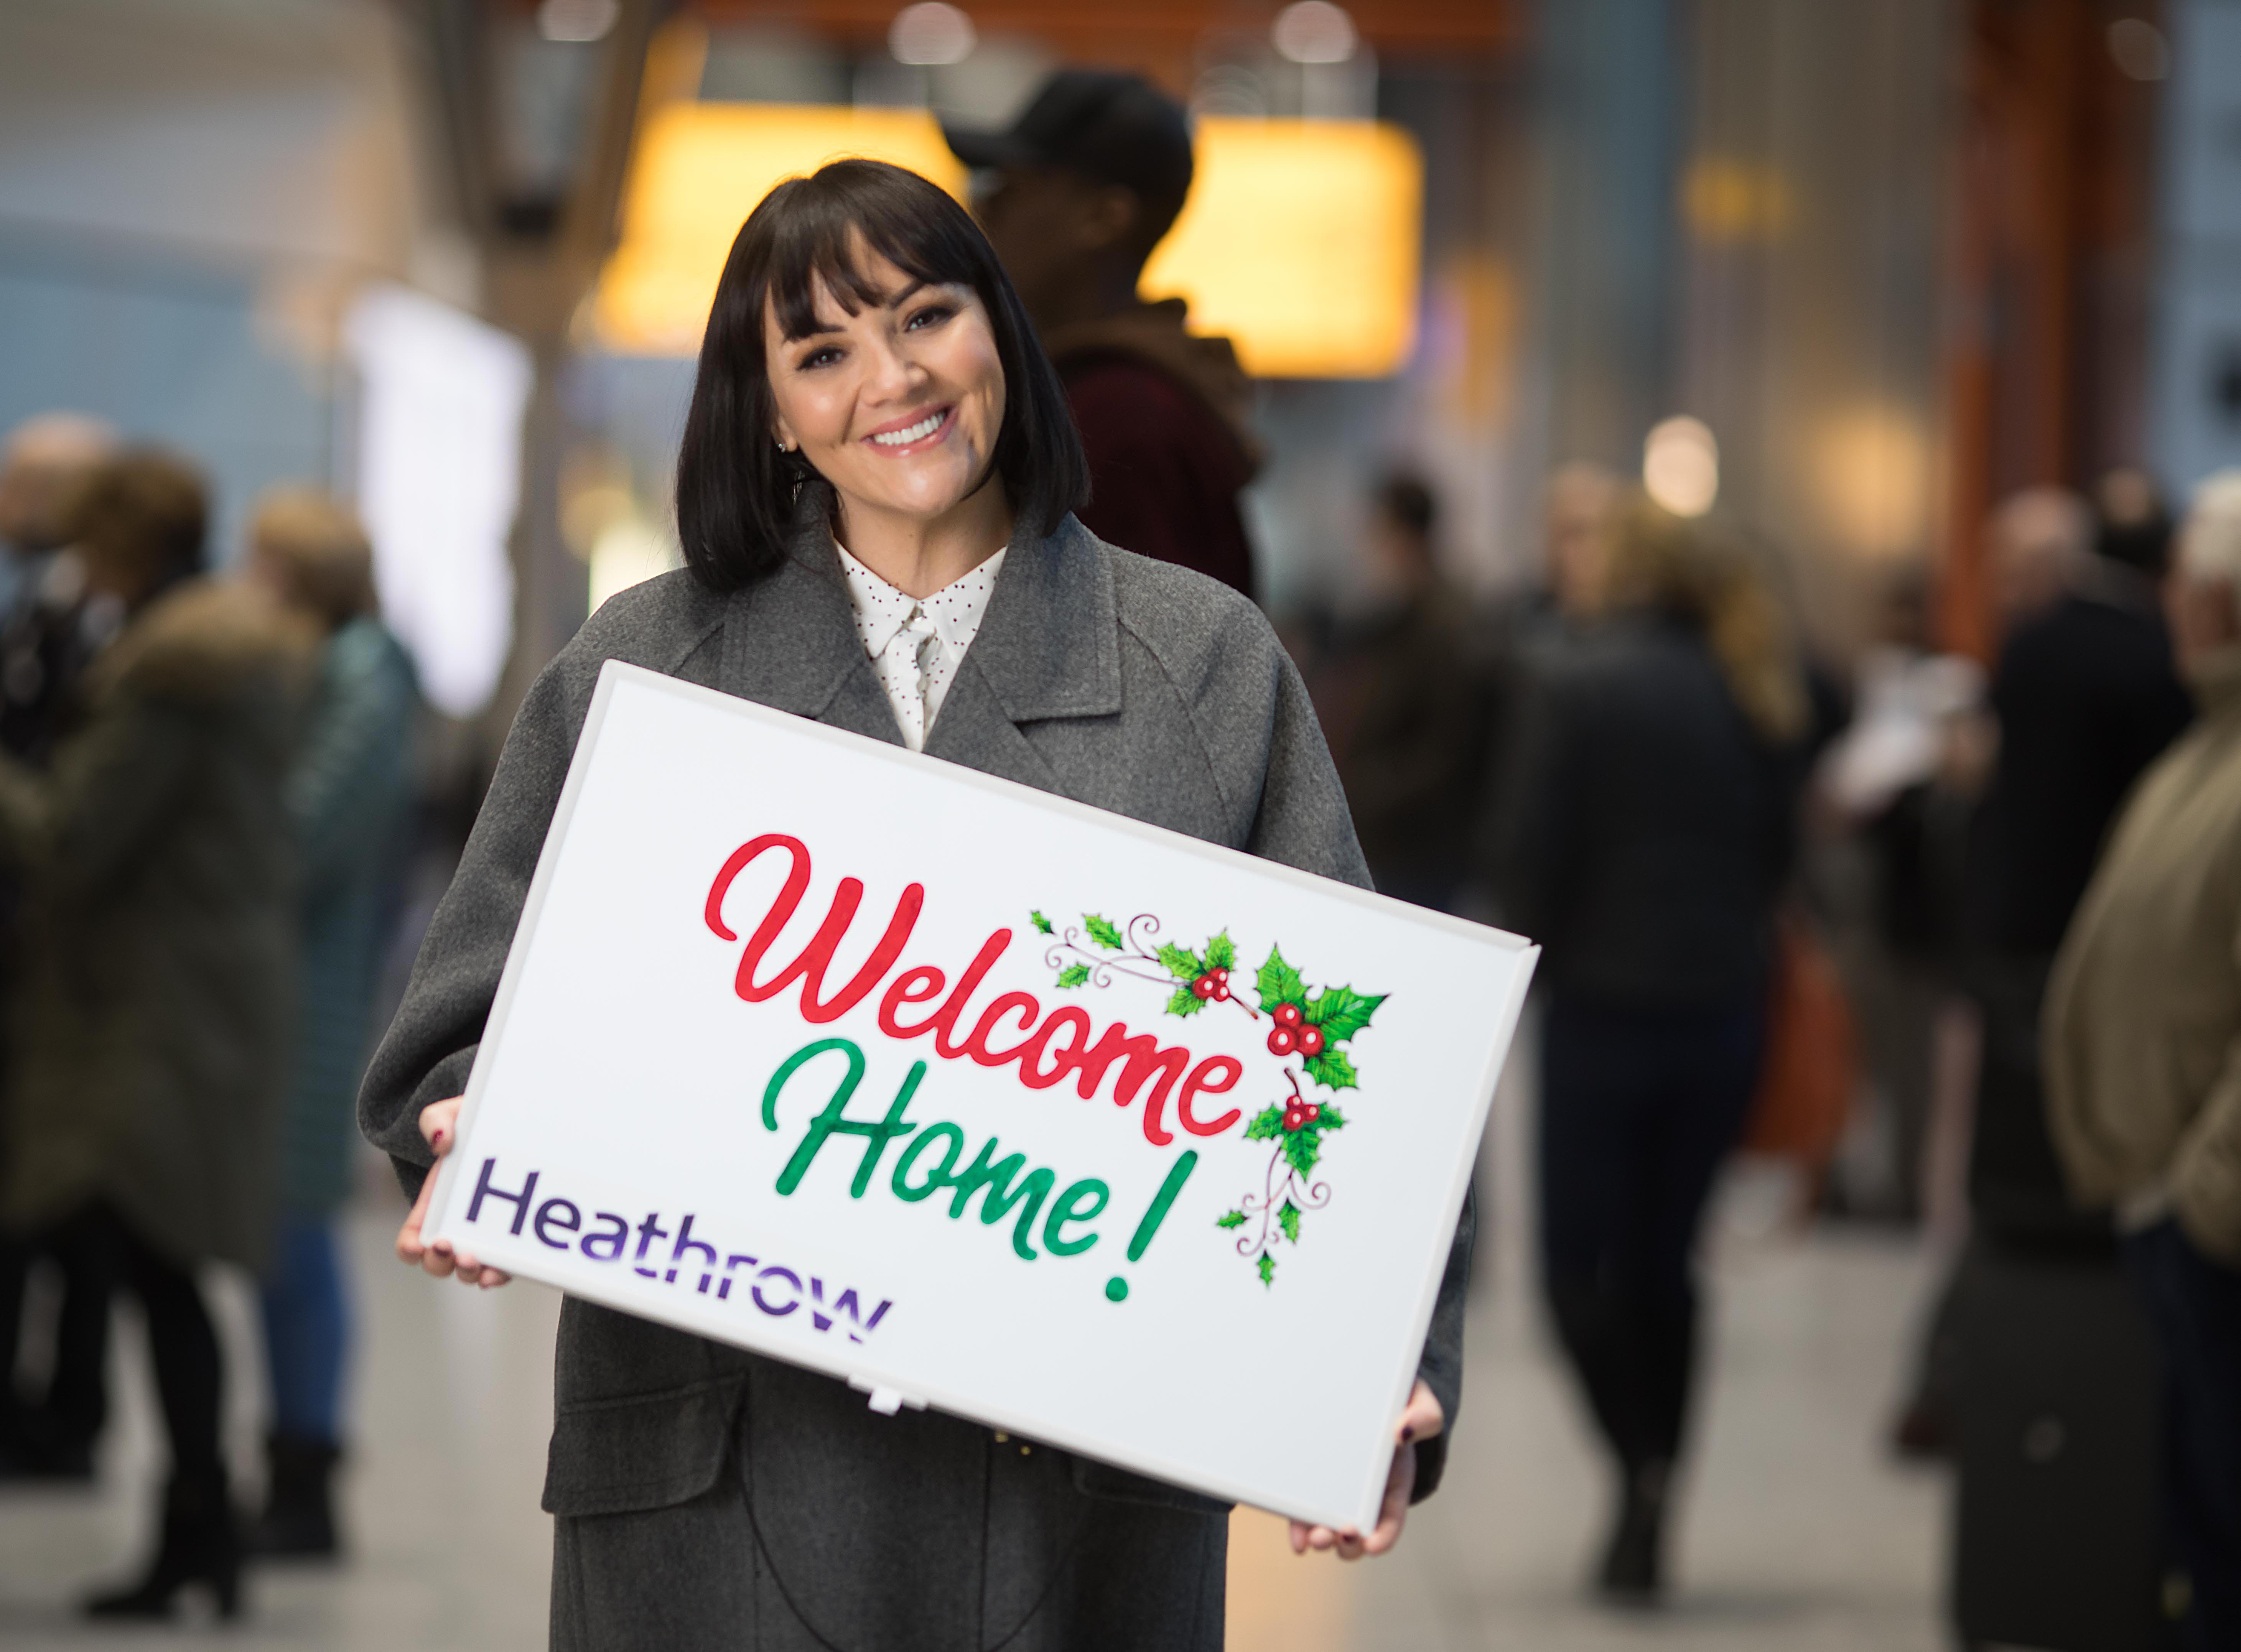 love actually, heathrow, martine mccutcheon